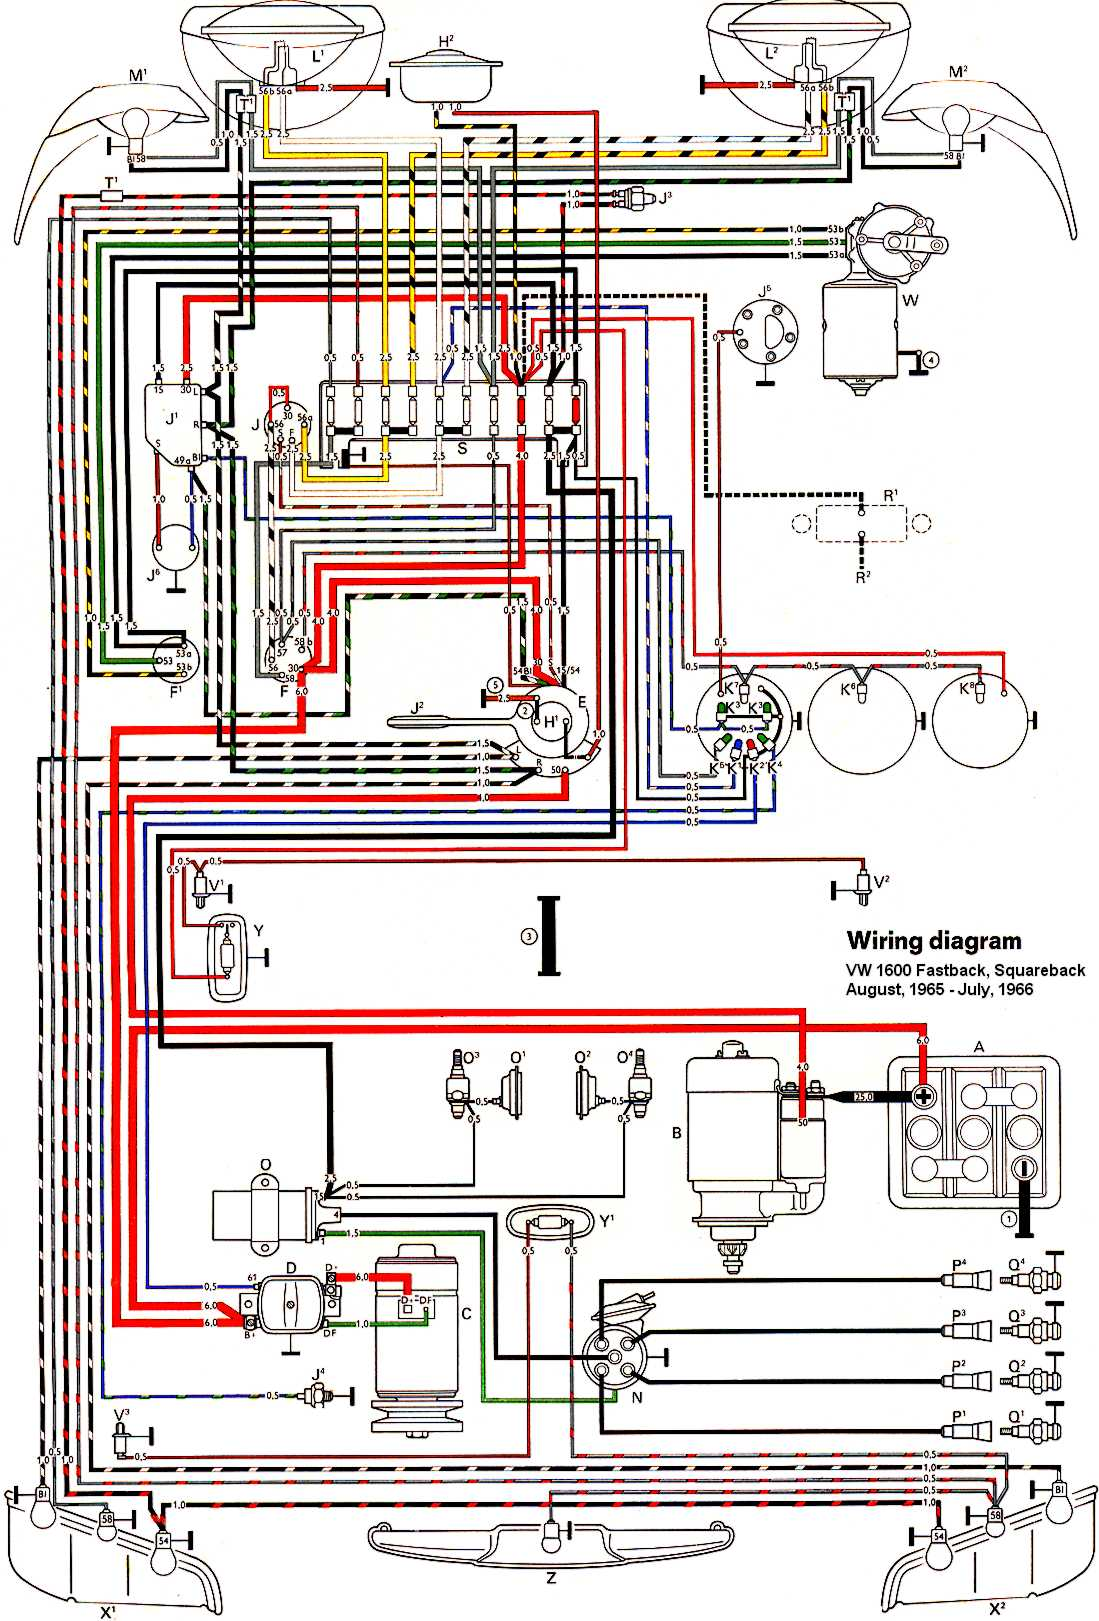 Vw Type 3 Fuel Injection Wiring Diagram 2005 Toyota Stereo ... Vw Beetle Fuel Injection Wiring Diagram on